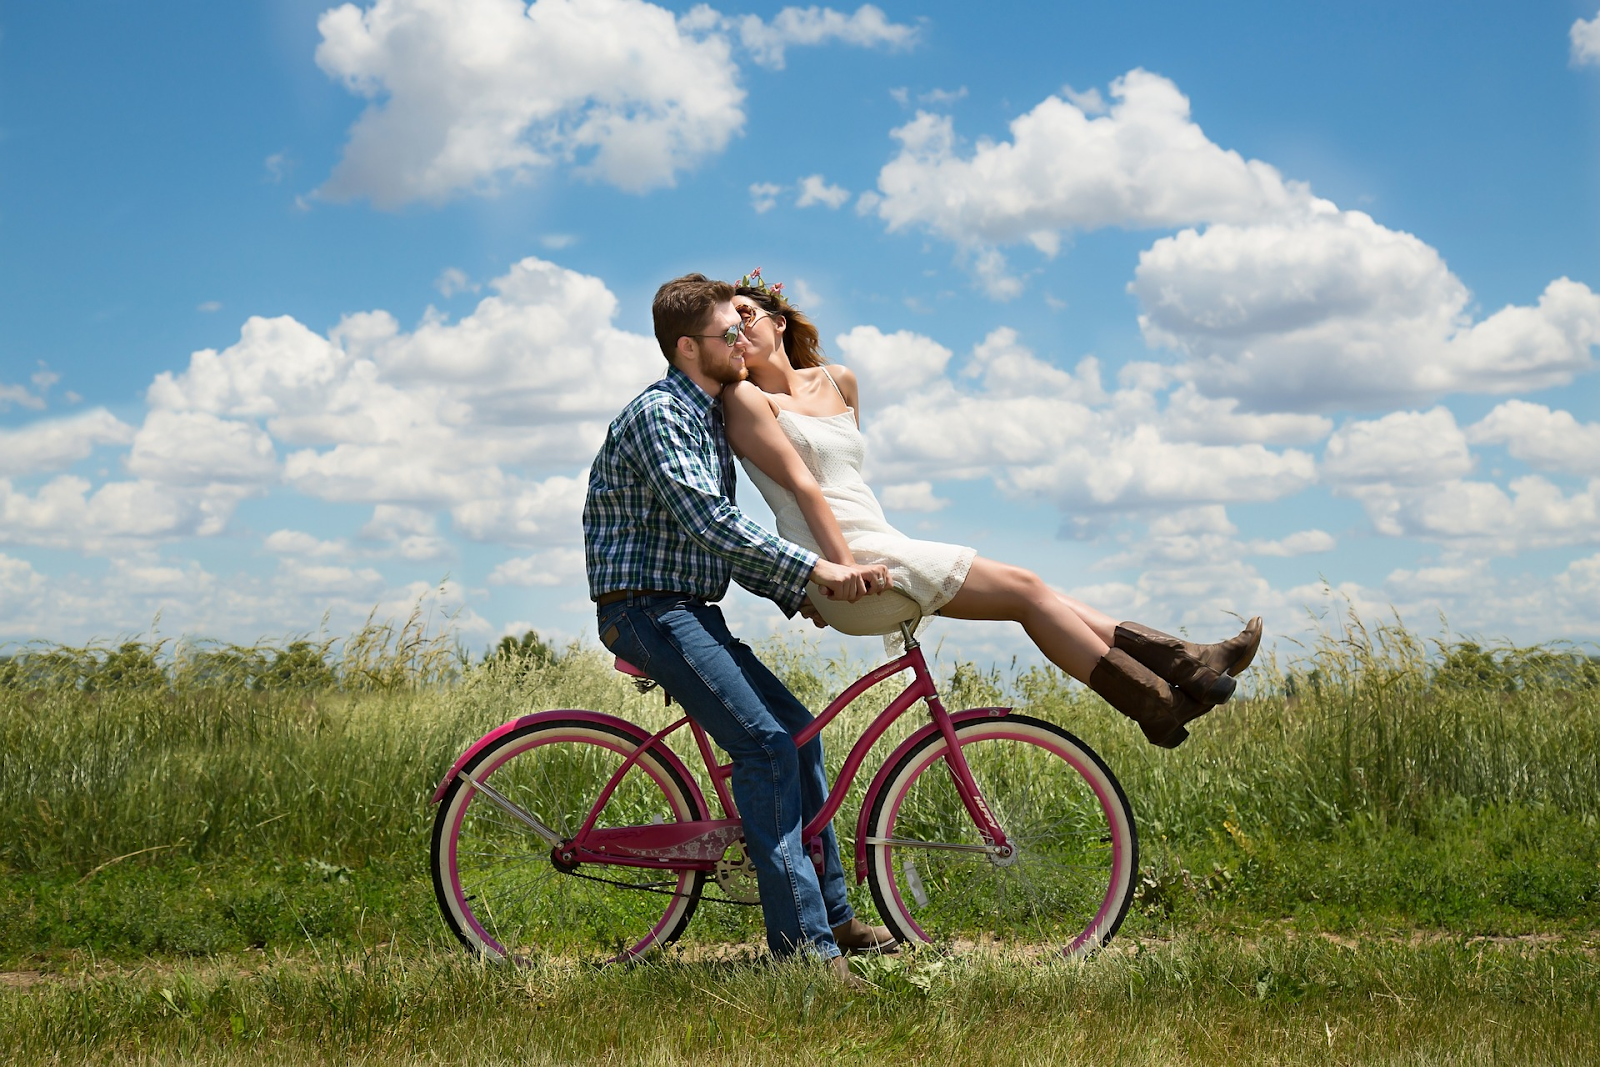 young couple riding a red bicycle in a field